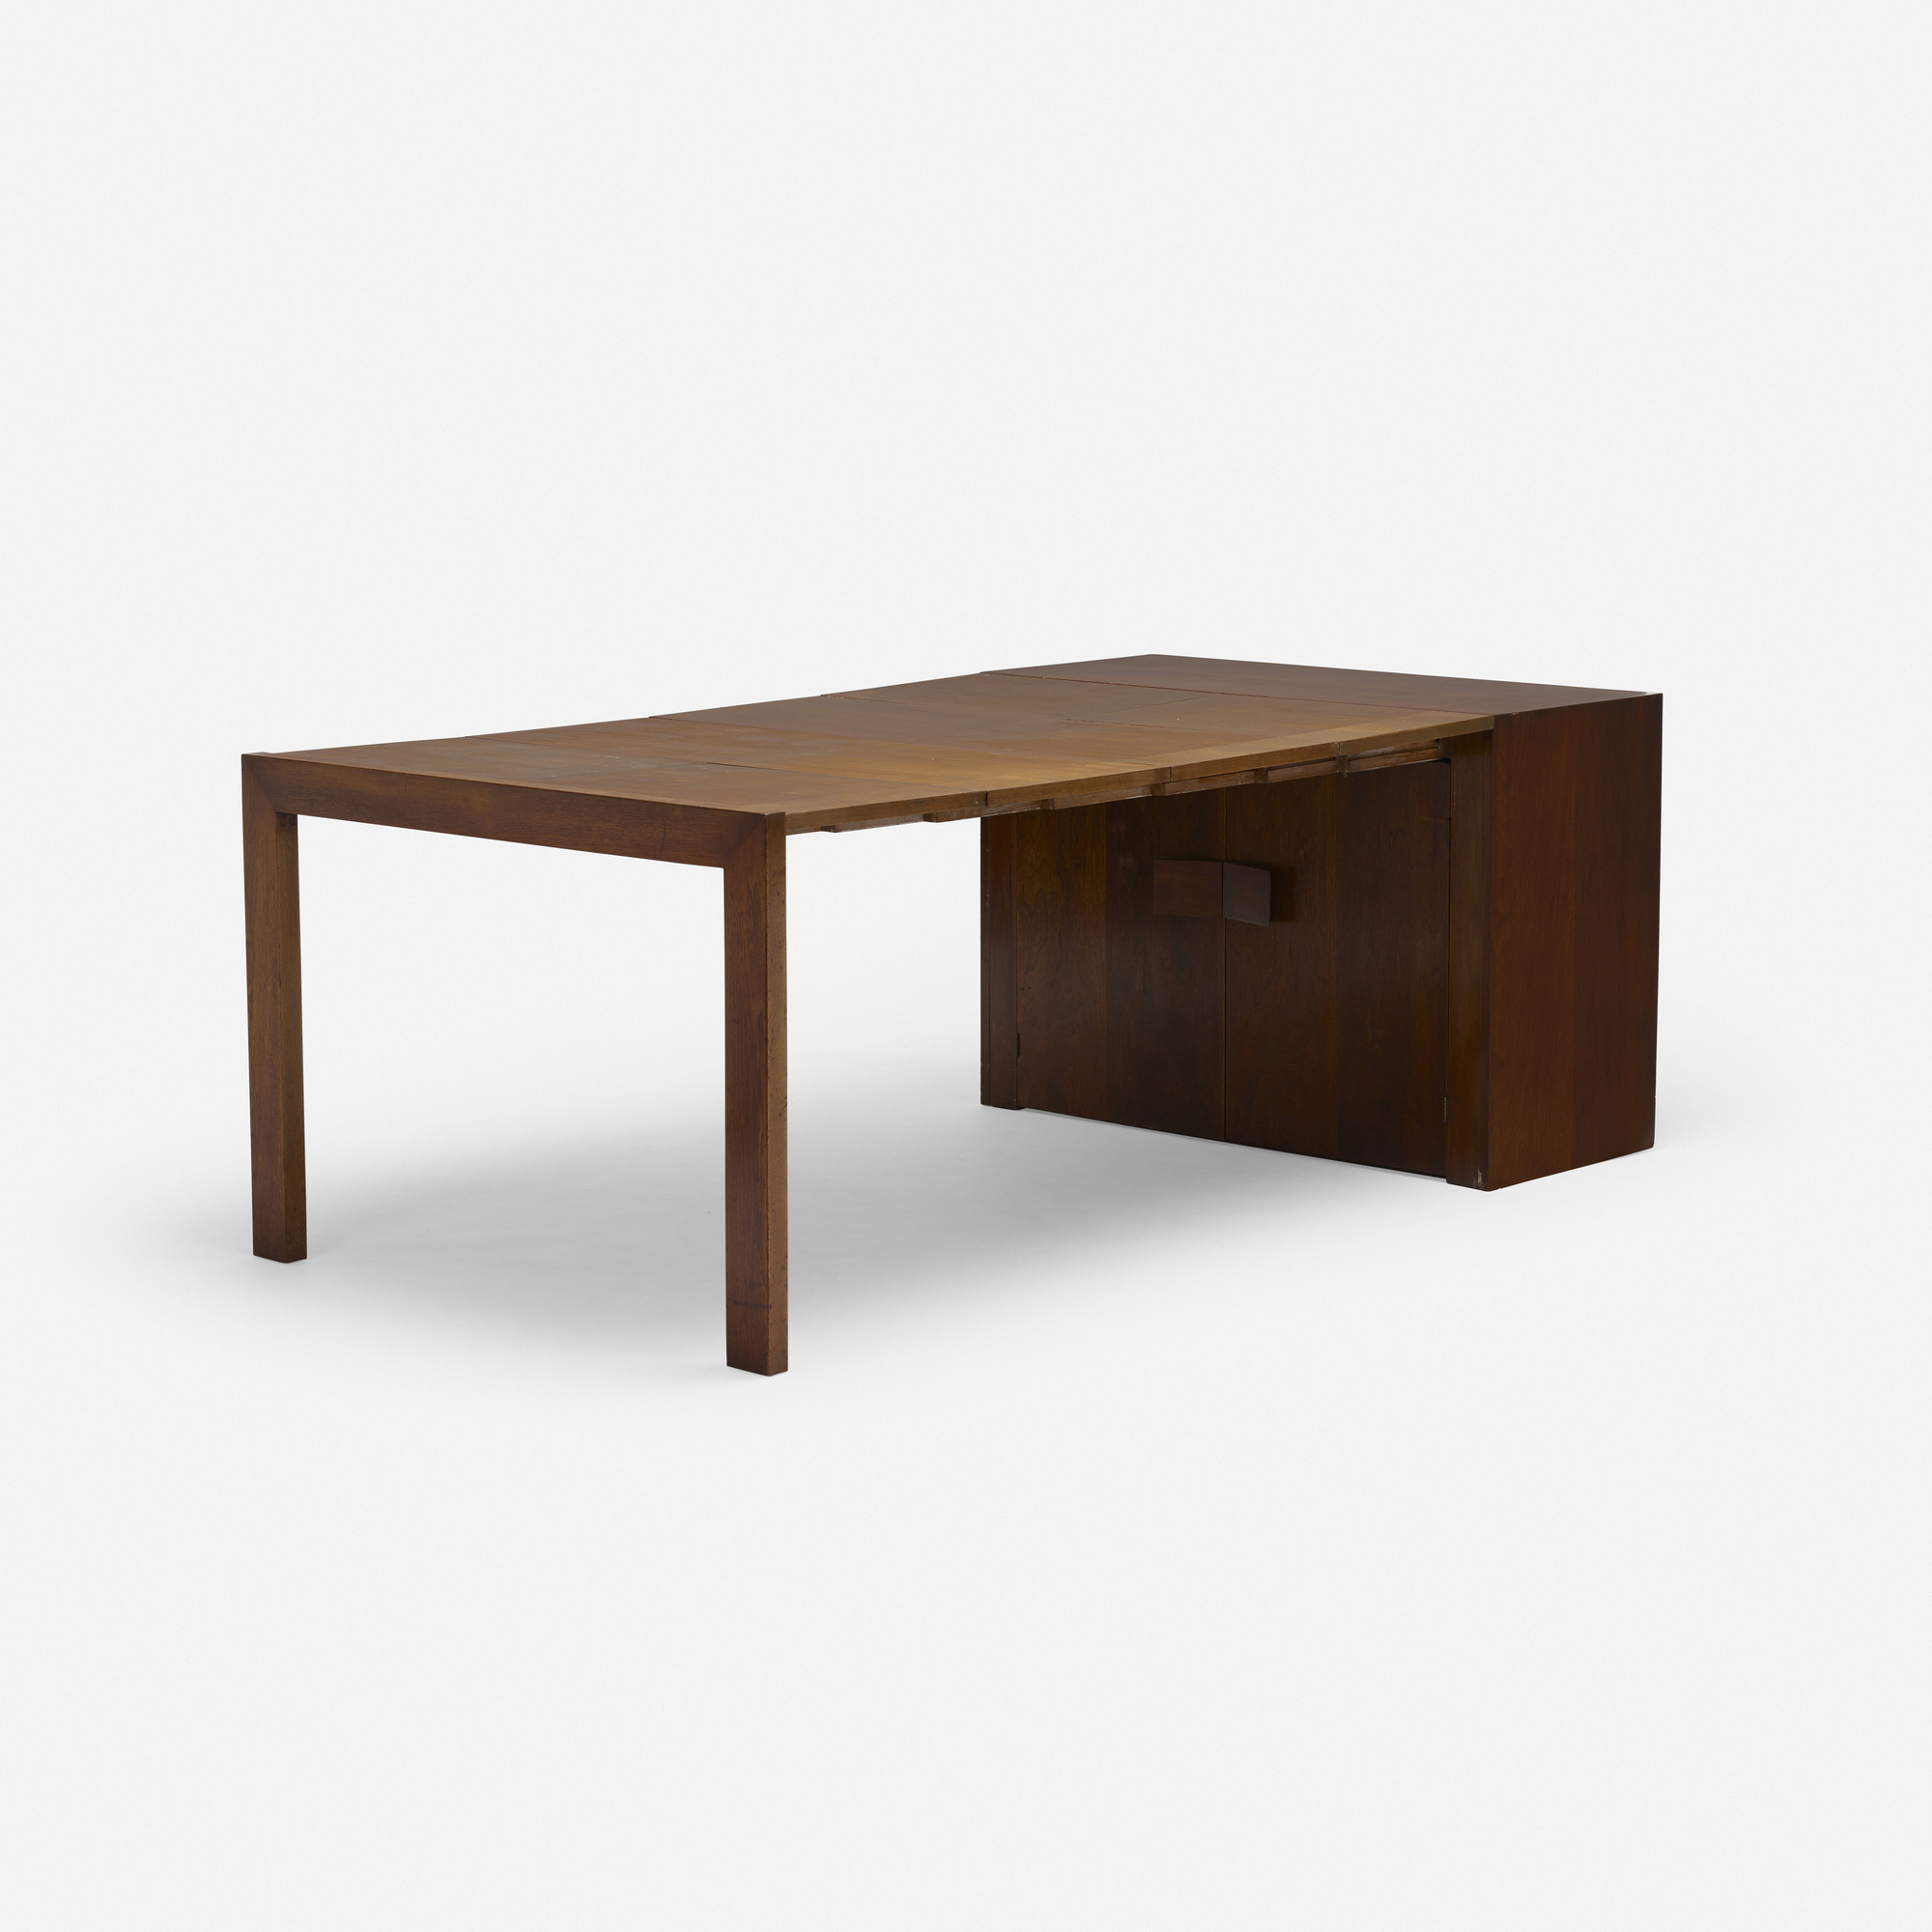 152: Milo Baughman / extension dining table, model 104 (2 of 3)